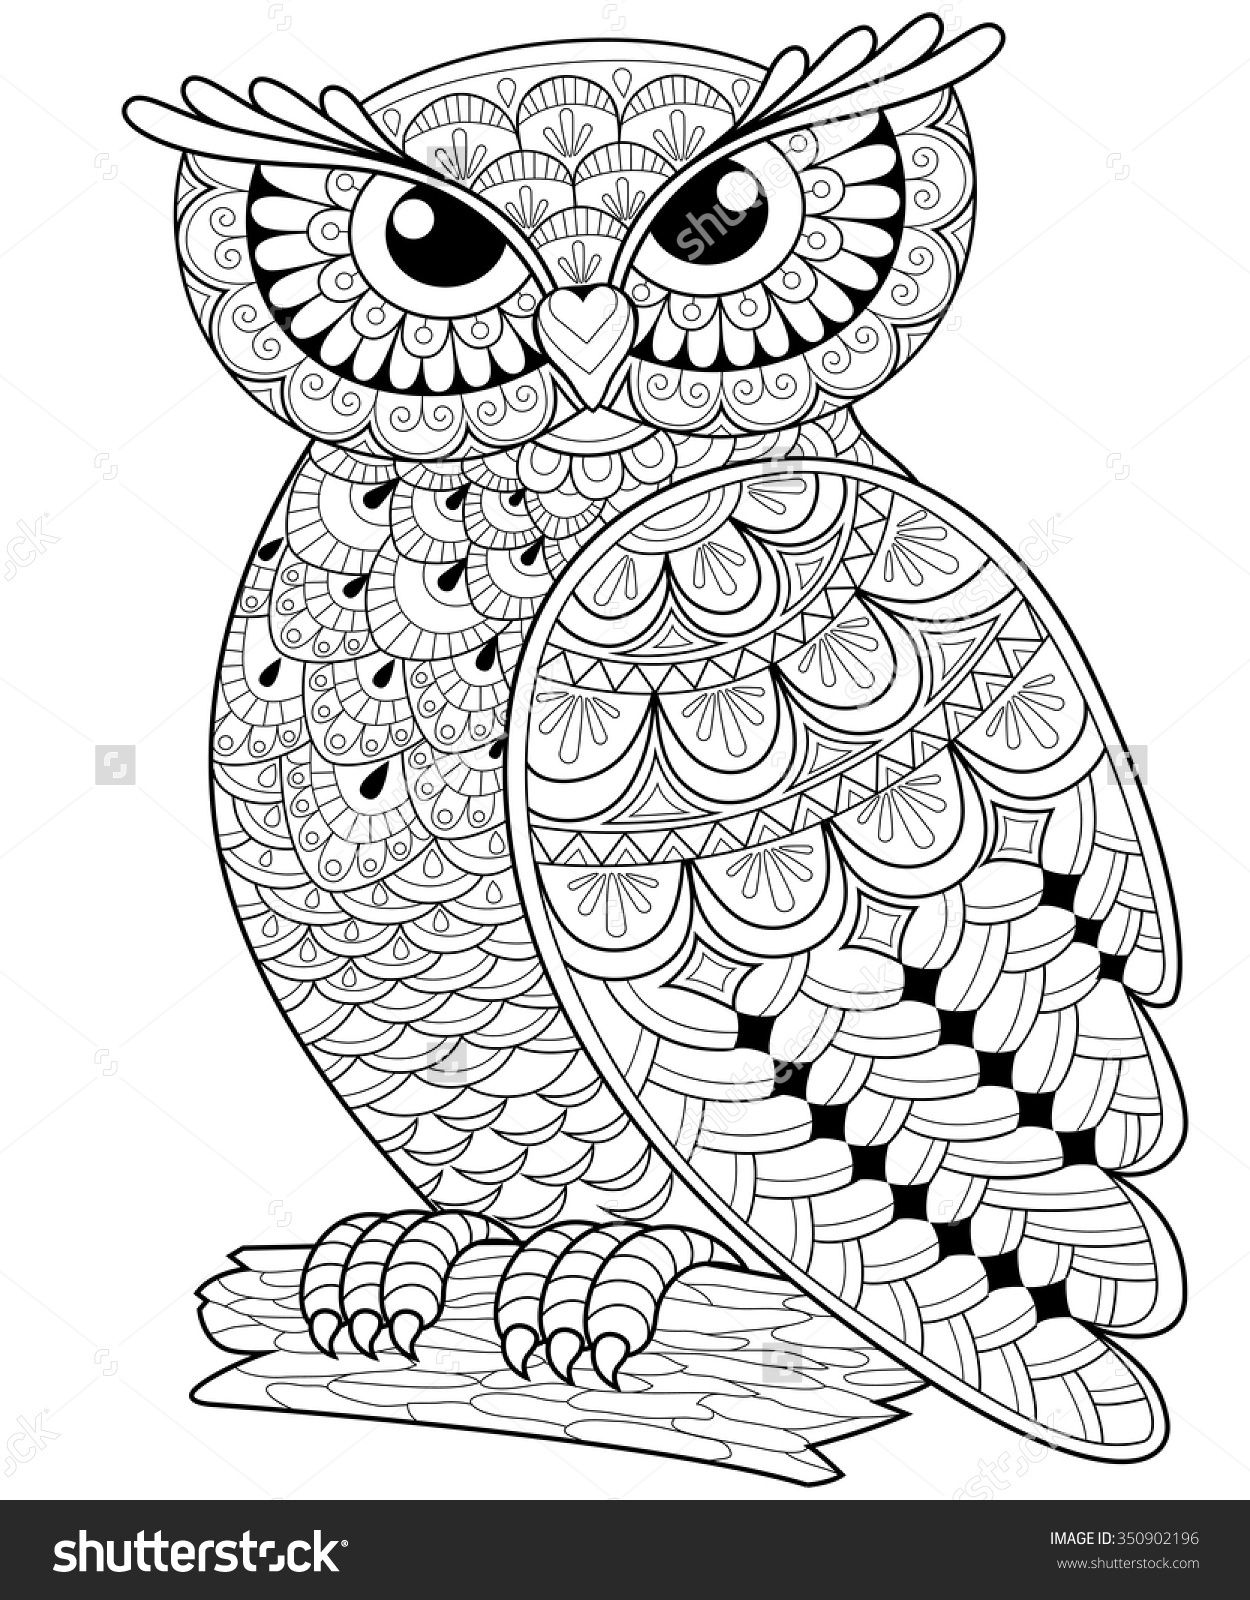 Decorative Owl Adult Antistress Coloring Page Black And White Hand Drawn Illustration For Book